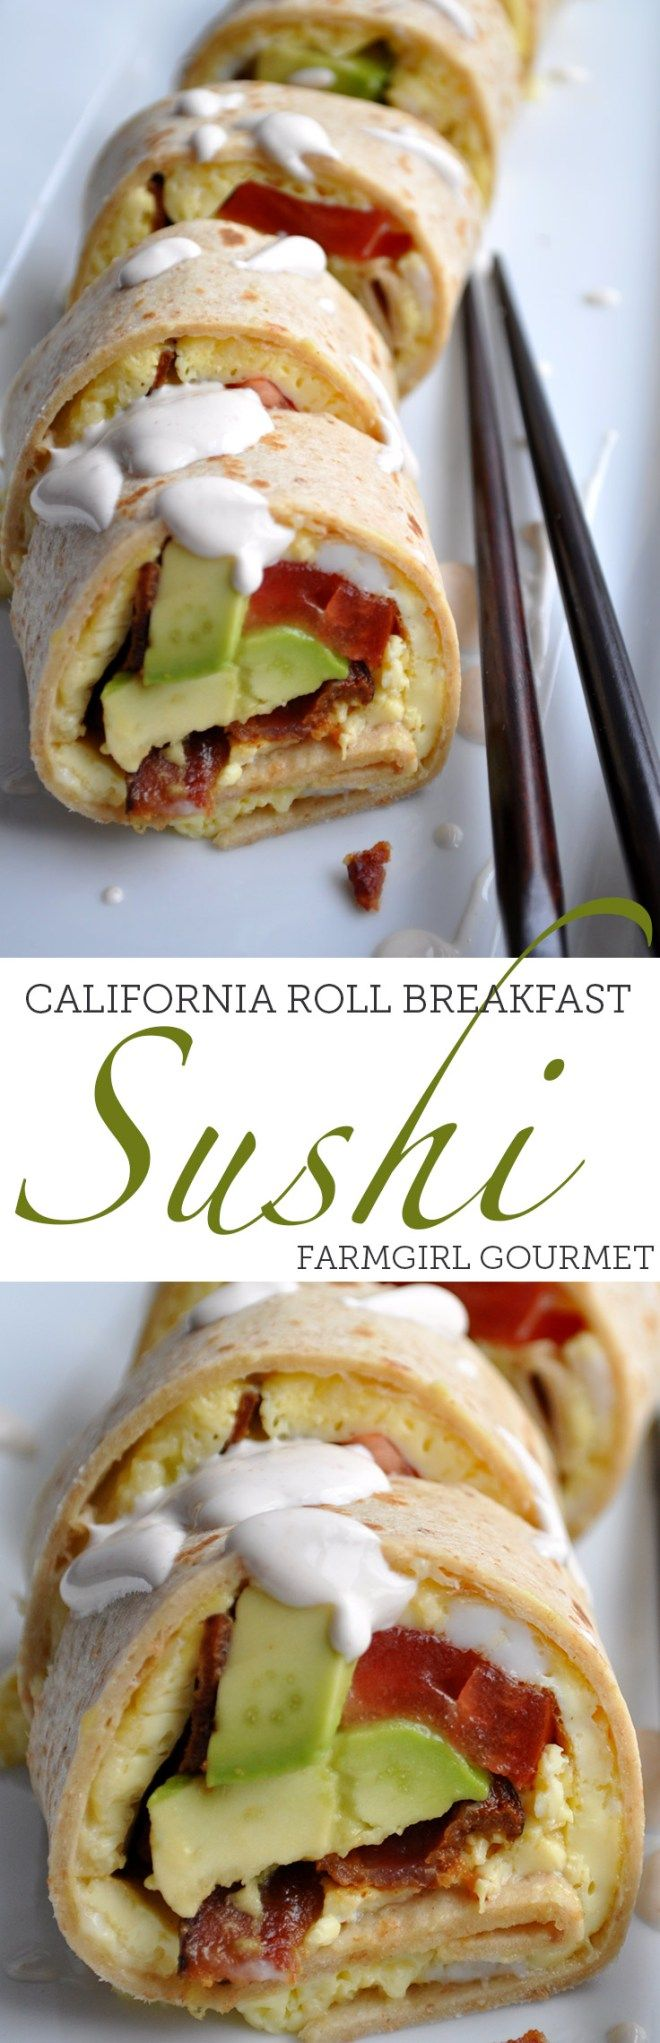 California Roll Breakfast Sushi - Farmgirl Gourmet